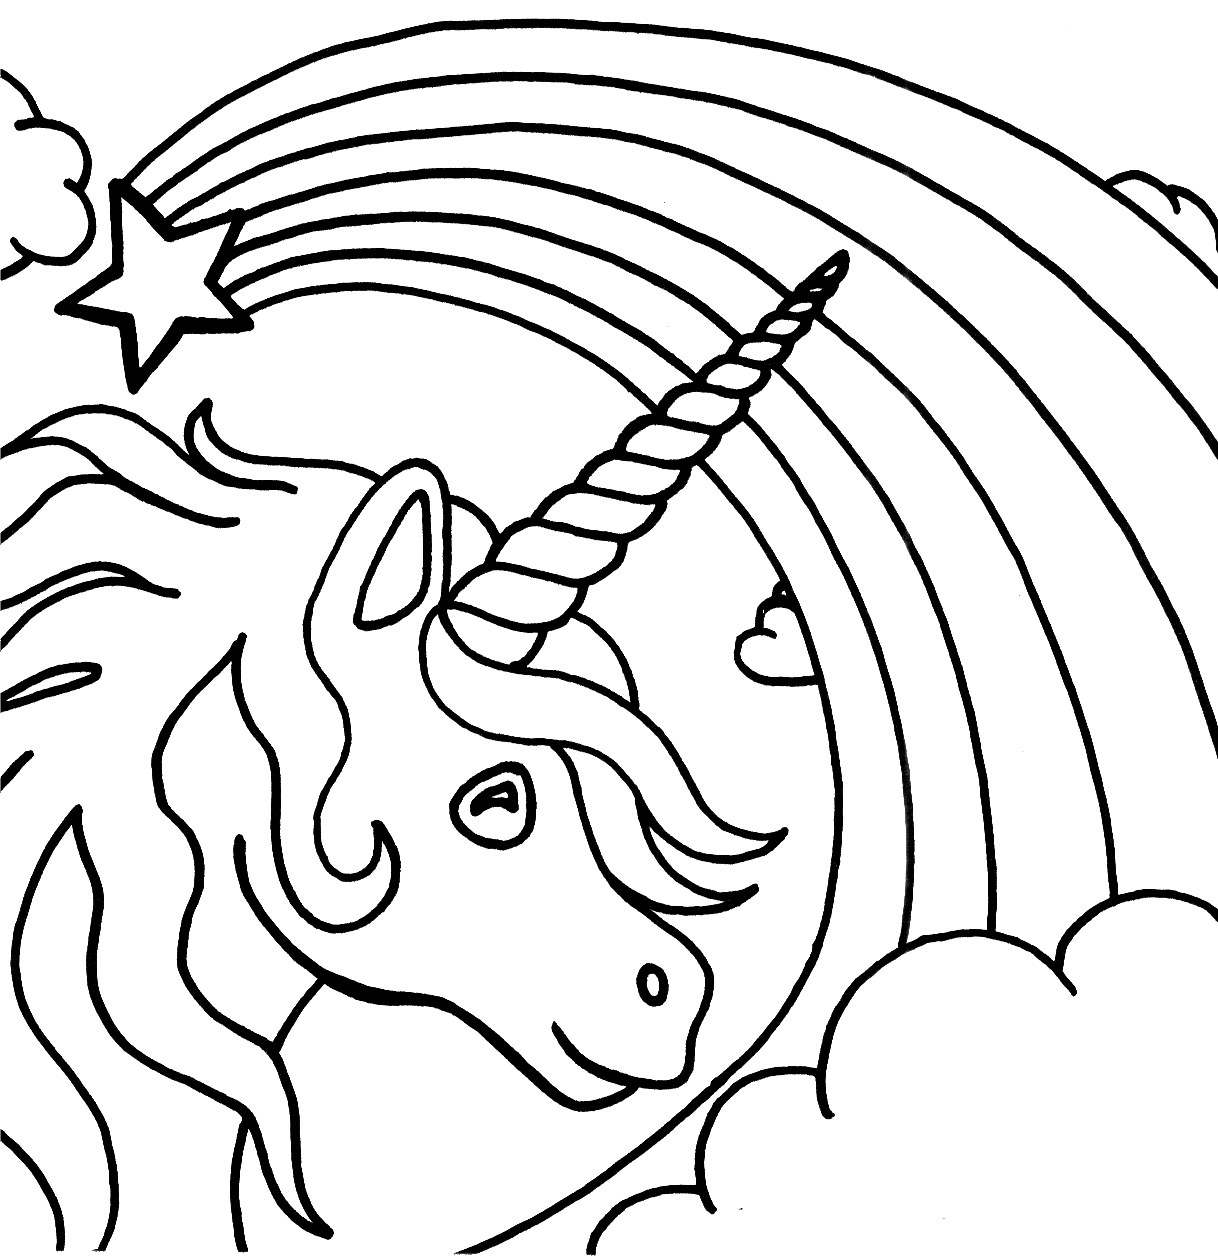 Free Printable Unicorn Coloring Pages For Kids